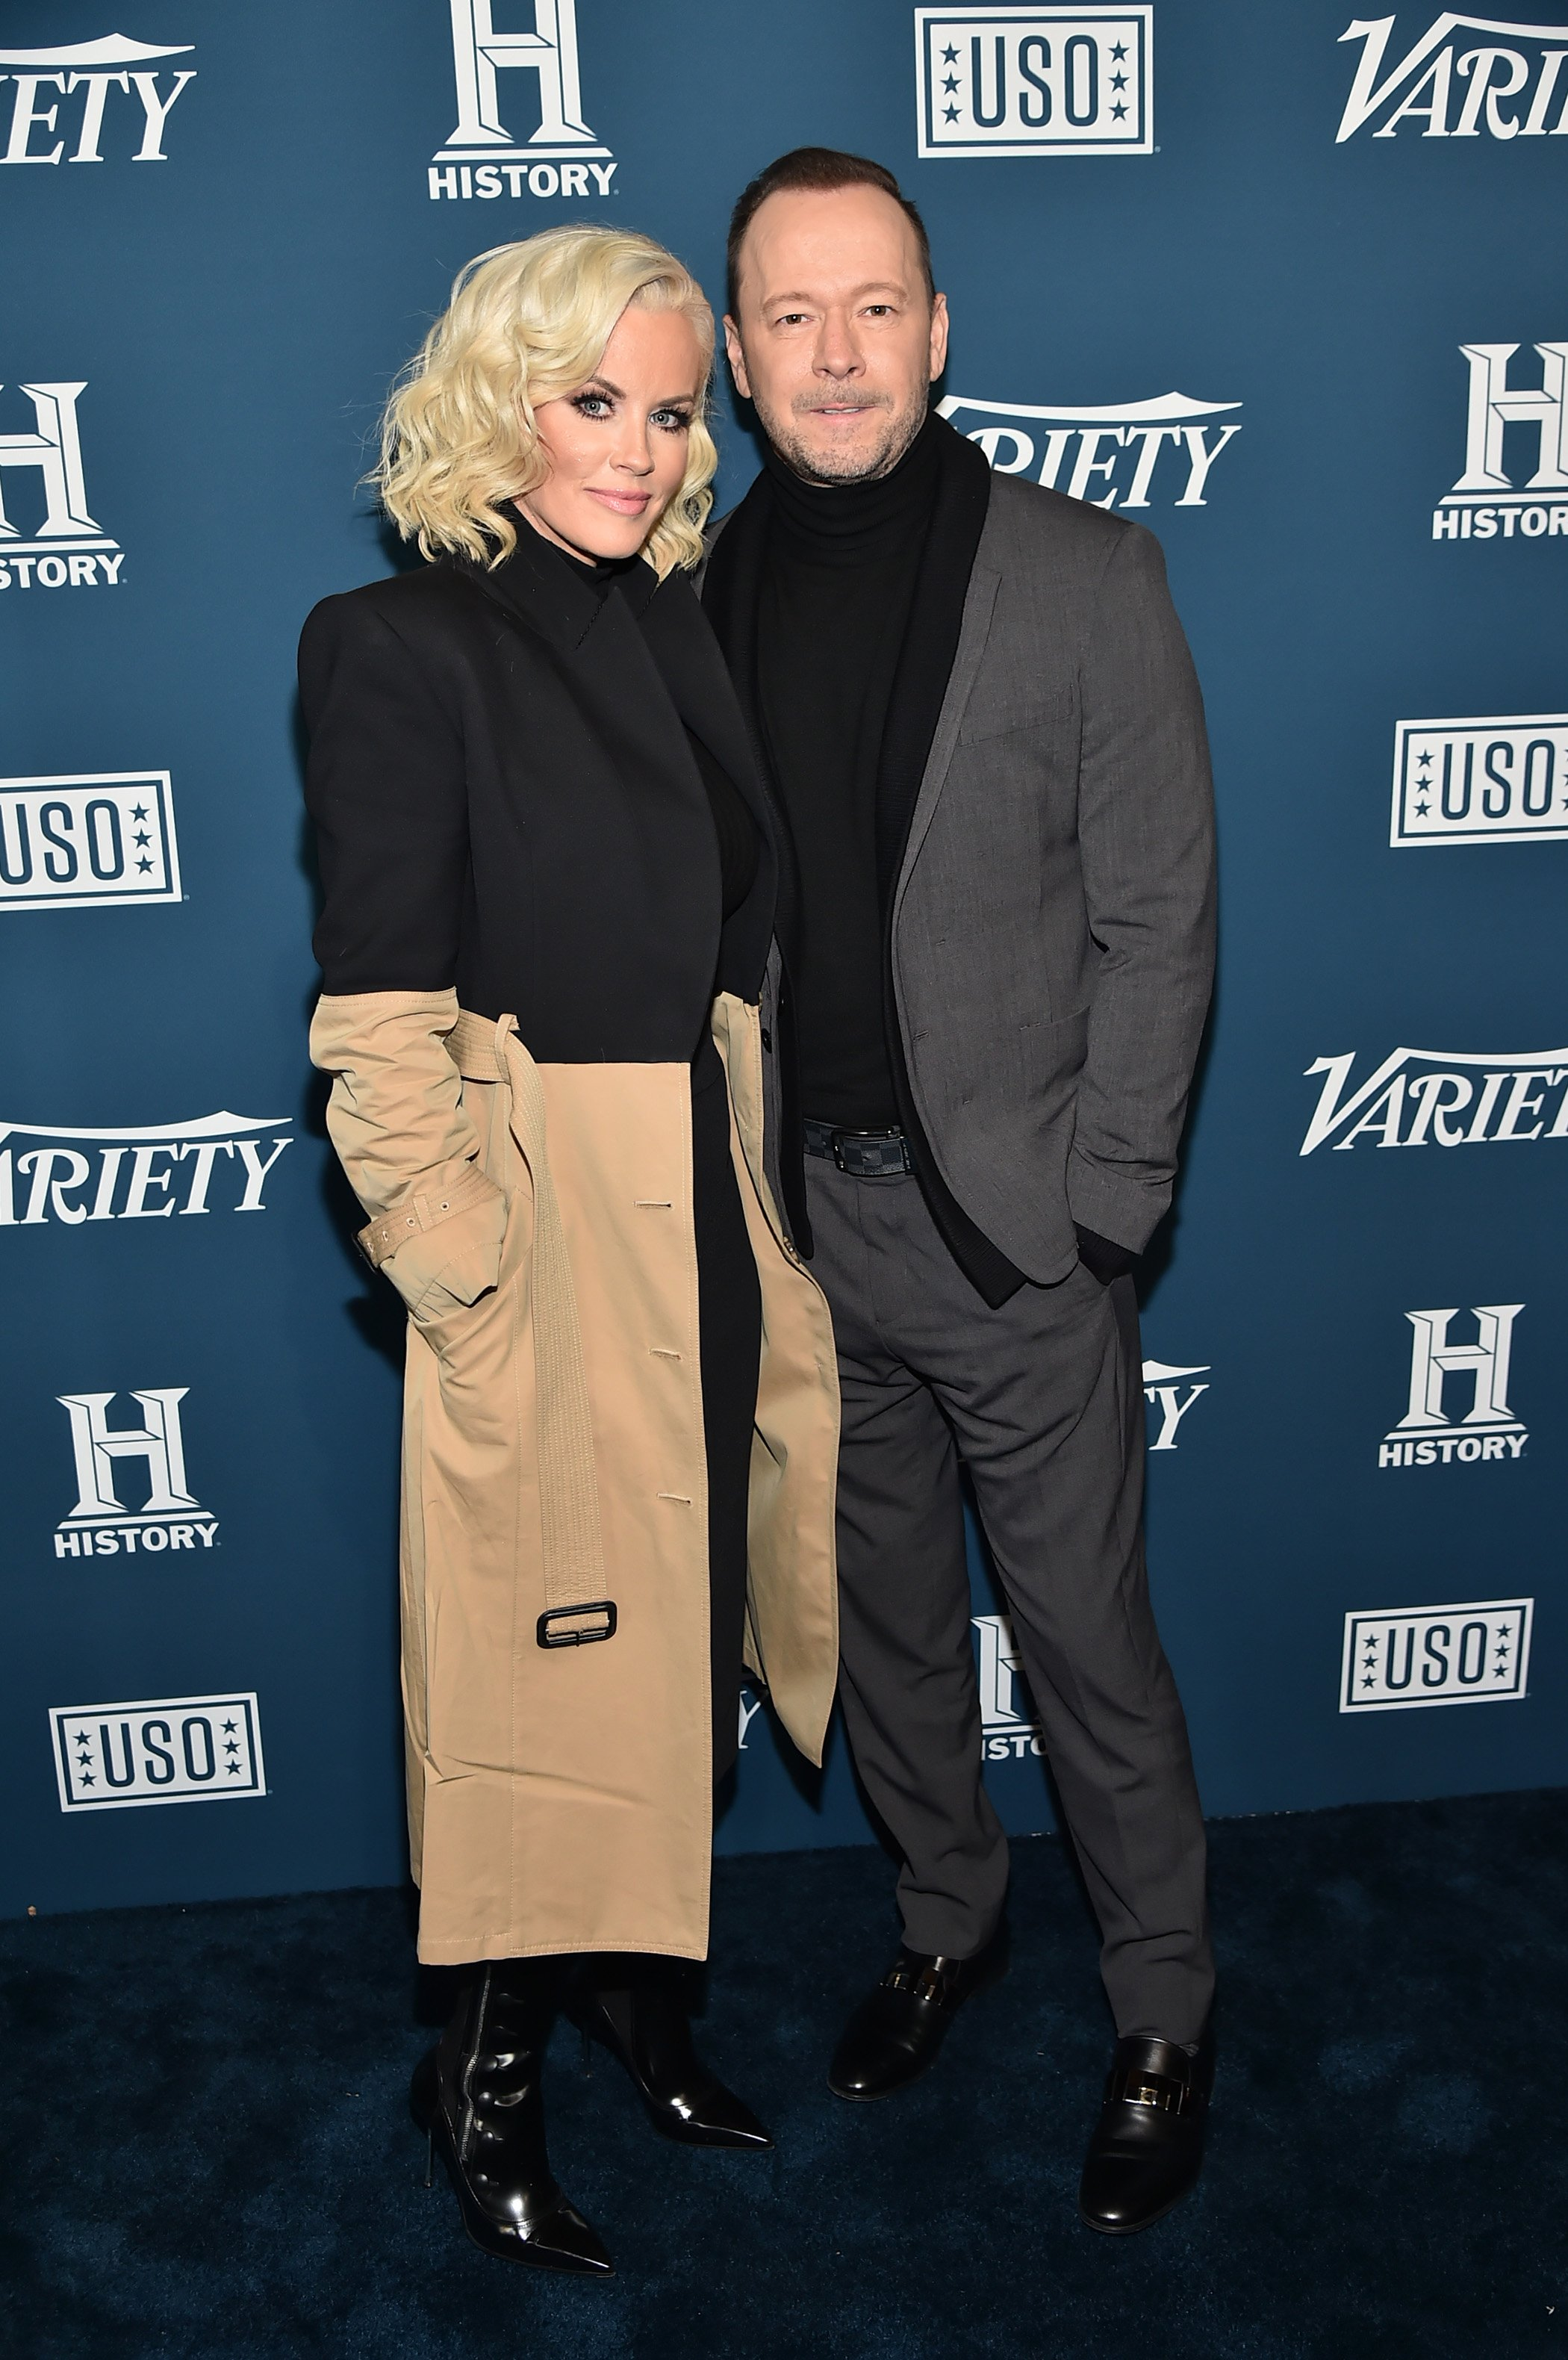 Jenny McCarthy and Donnie Wahlberg attend Variety's 3rd Annual Salute To Service at Cipriani 25 Broadway on November 06, 2019 in New York City | Photo: GettyImages